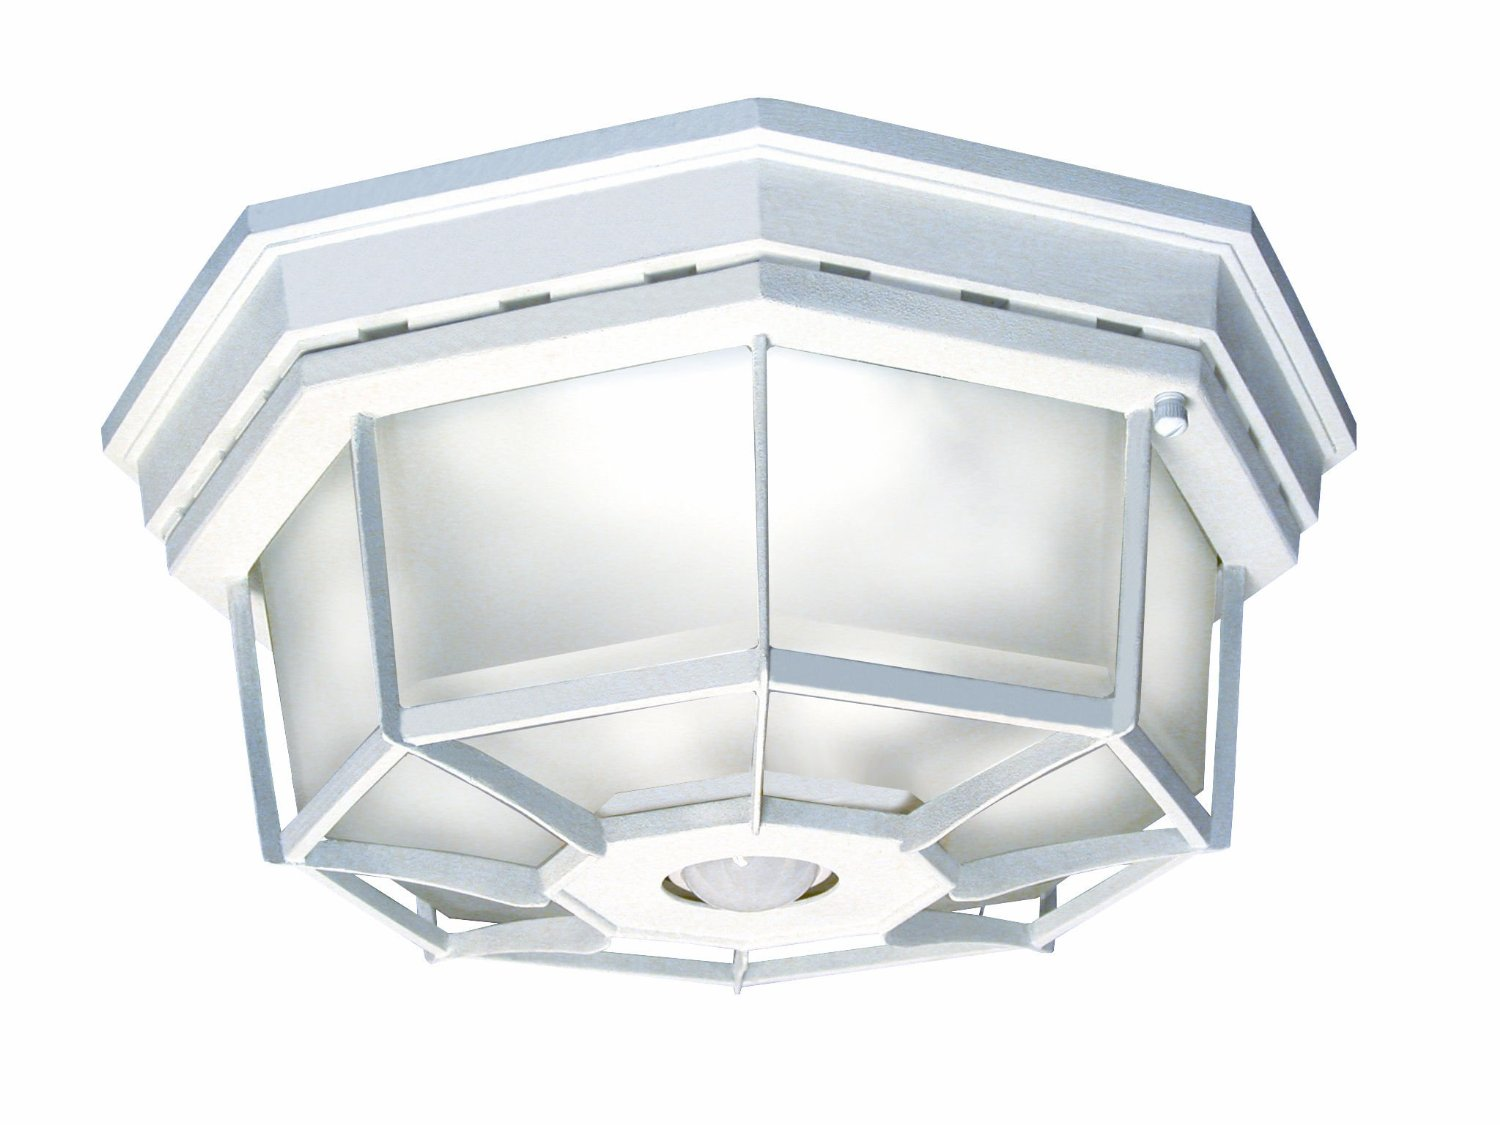 Led Outdoor Ceiling Light Fixtures Part - 16: Making Use Of Motion Activated Ceiling Light